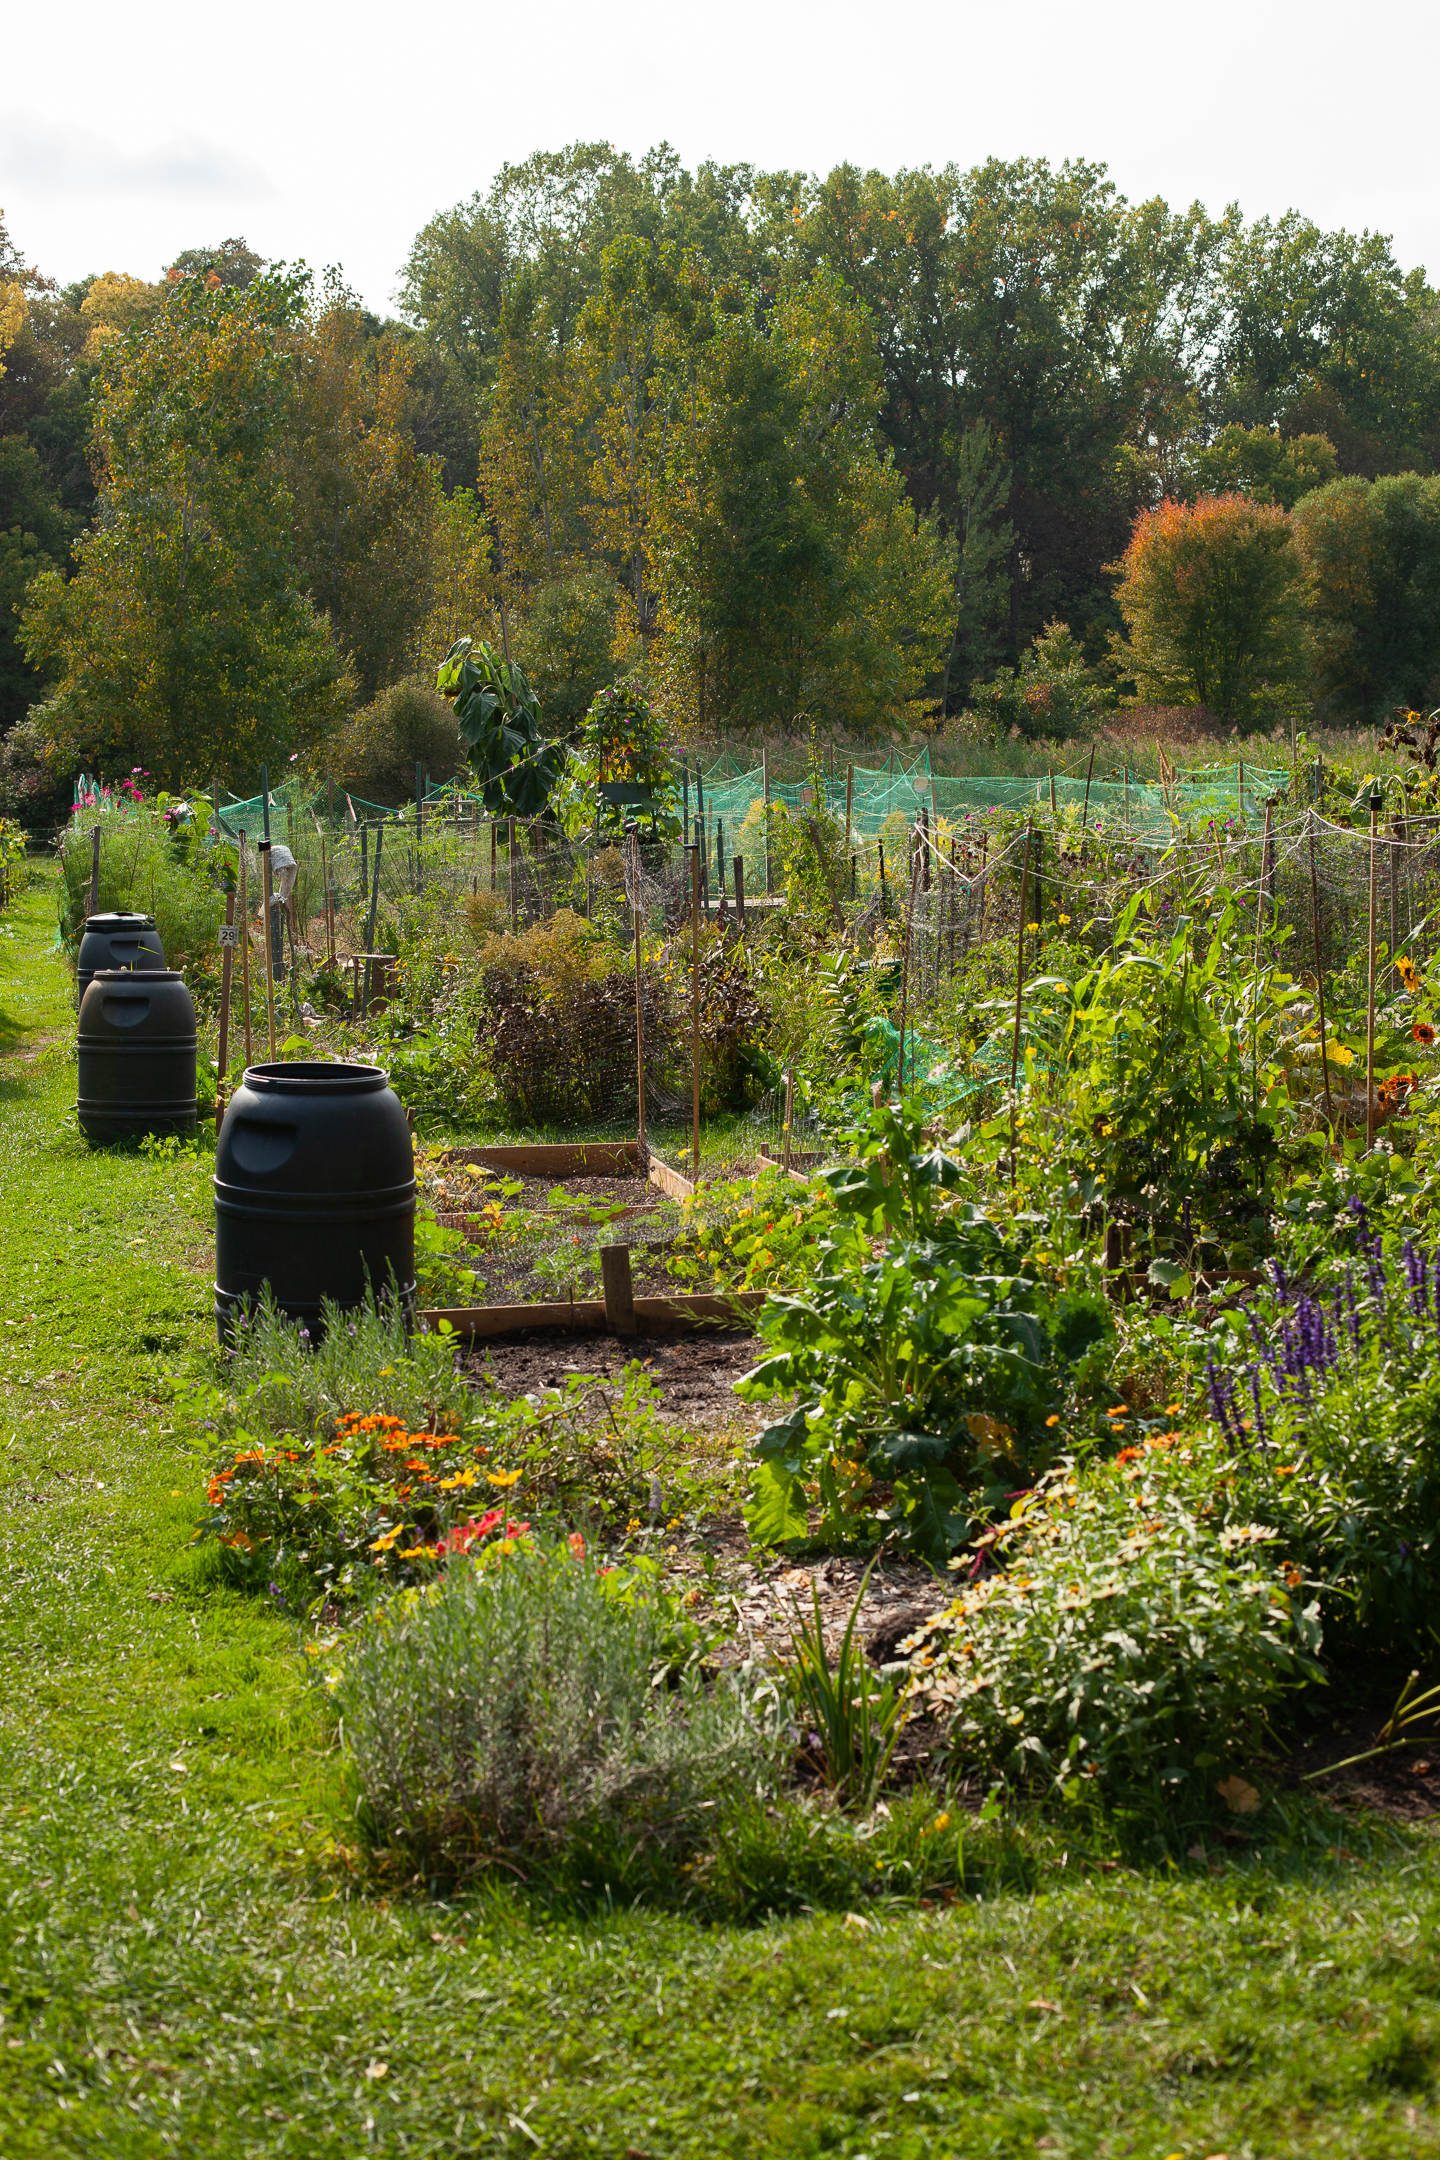 Whole view of Community garden